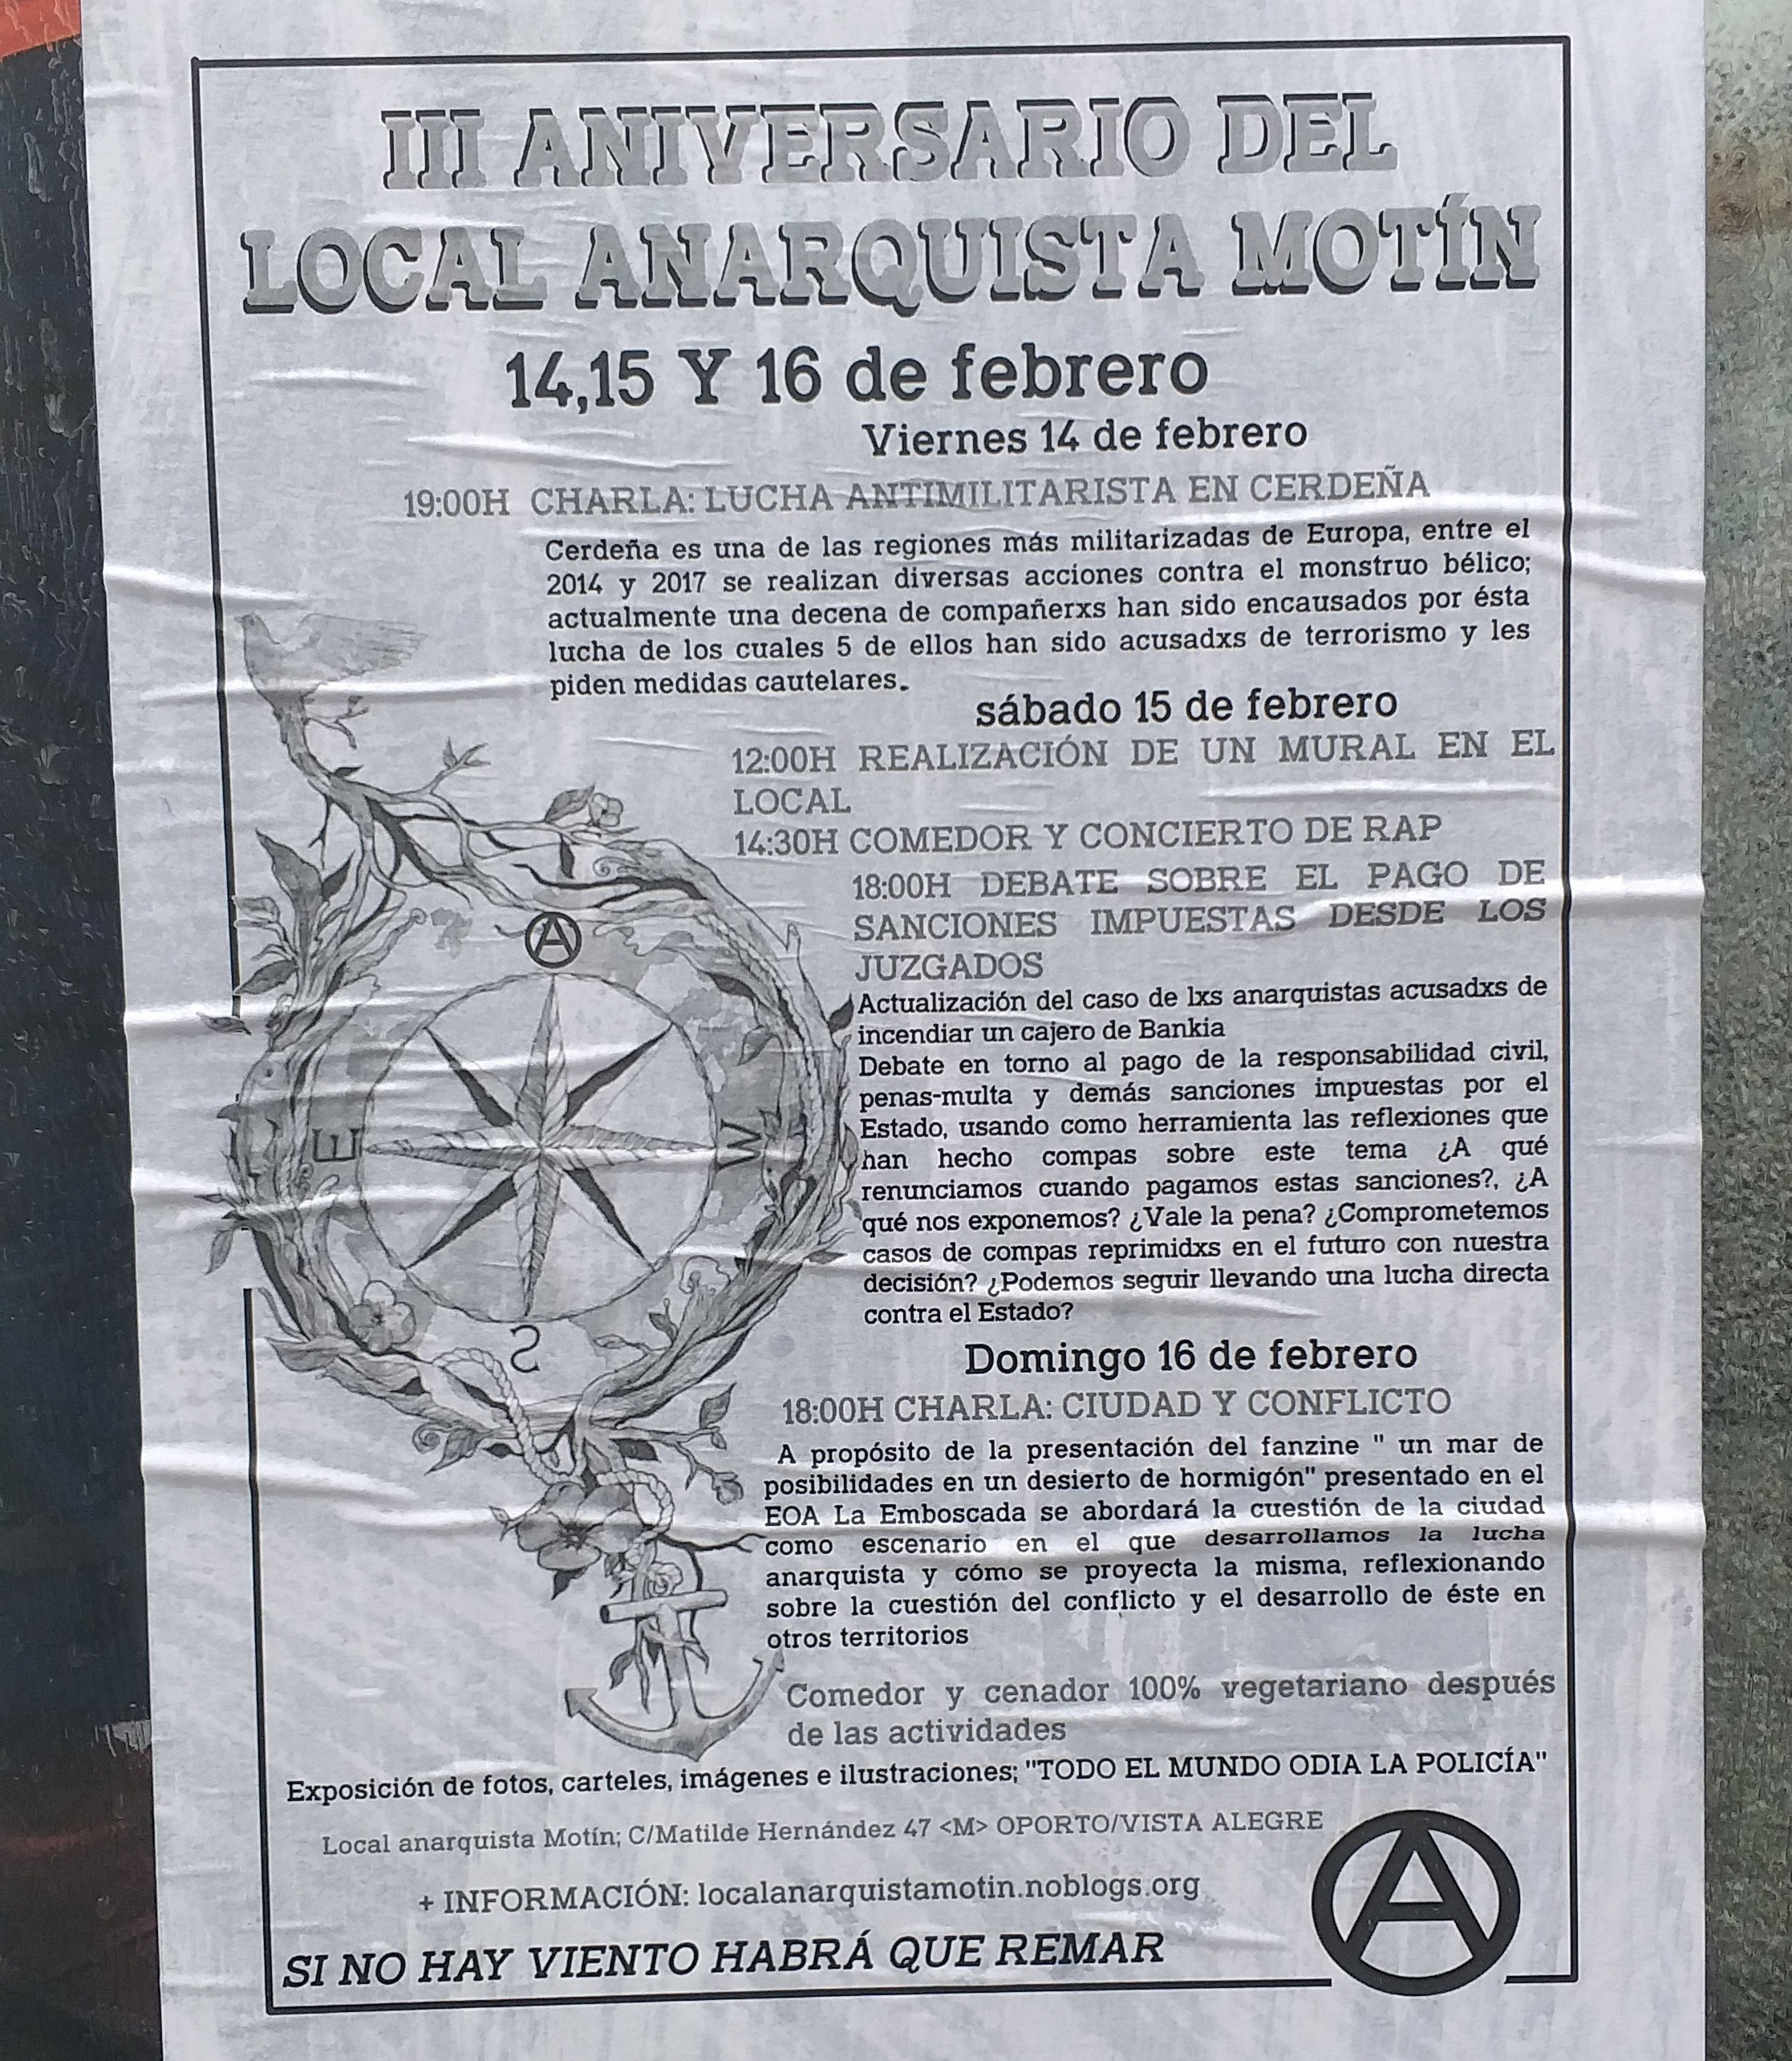 Cartel del local anarquista Motín.